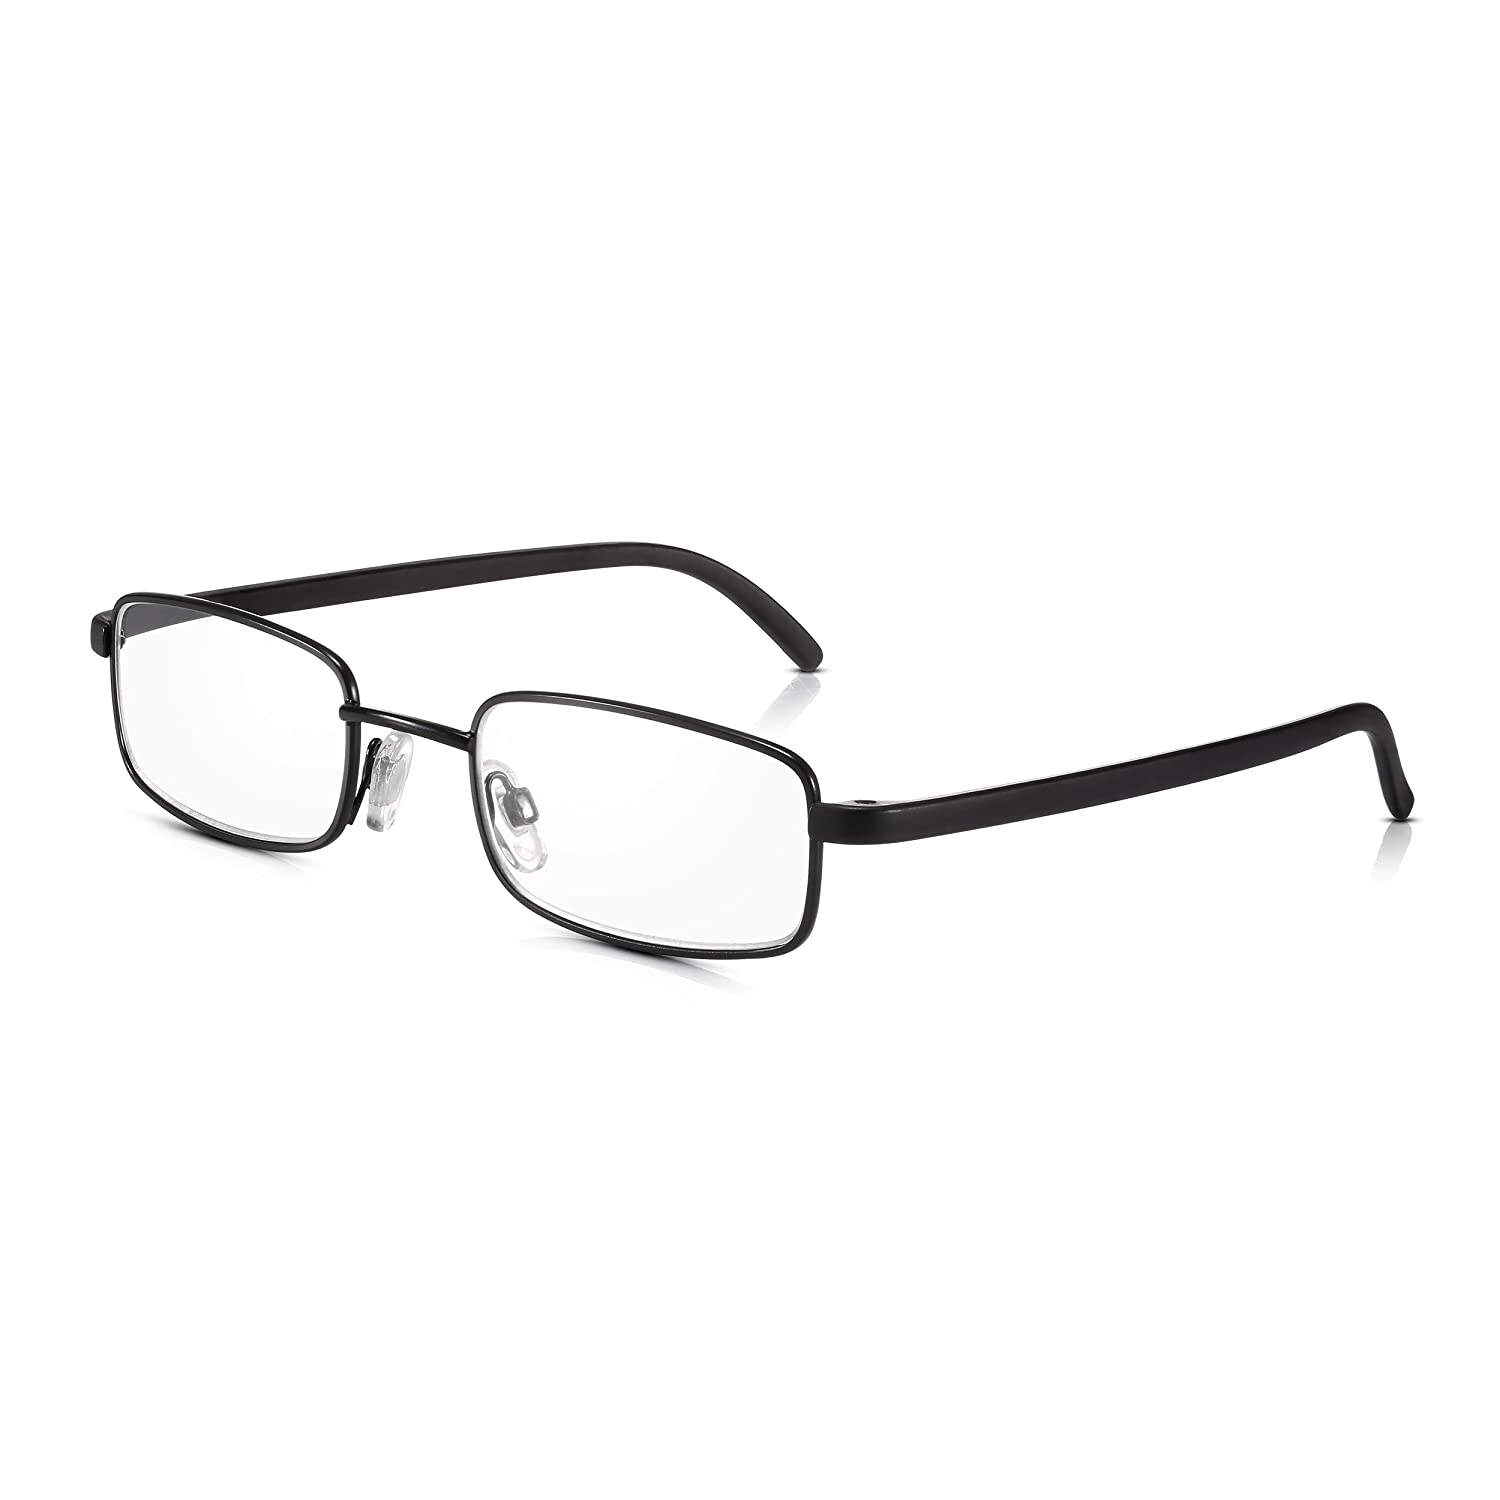 Read Optics 2 Pack Black Framed Metal Reading Glasses for Men/Women: Non-Prescription Reader Spectacles with Premium 2.00 Clear Lenses (1.0 to 3.5). High Optical Clarity, Anti-Glare, Scratch-Proof